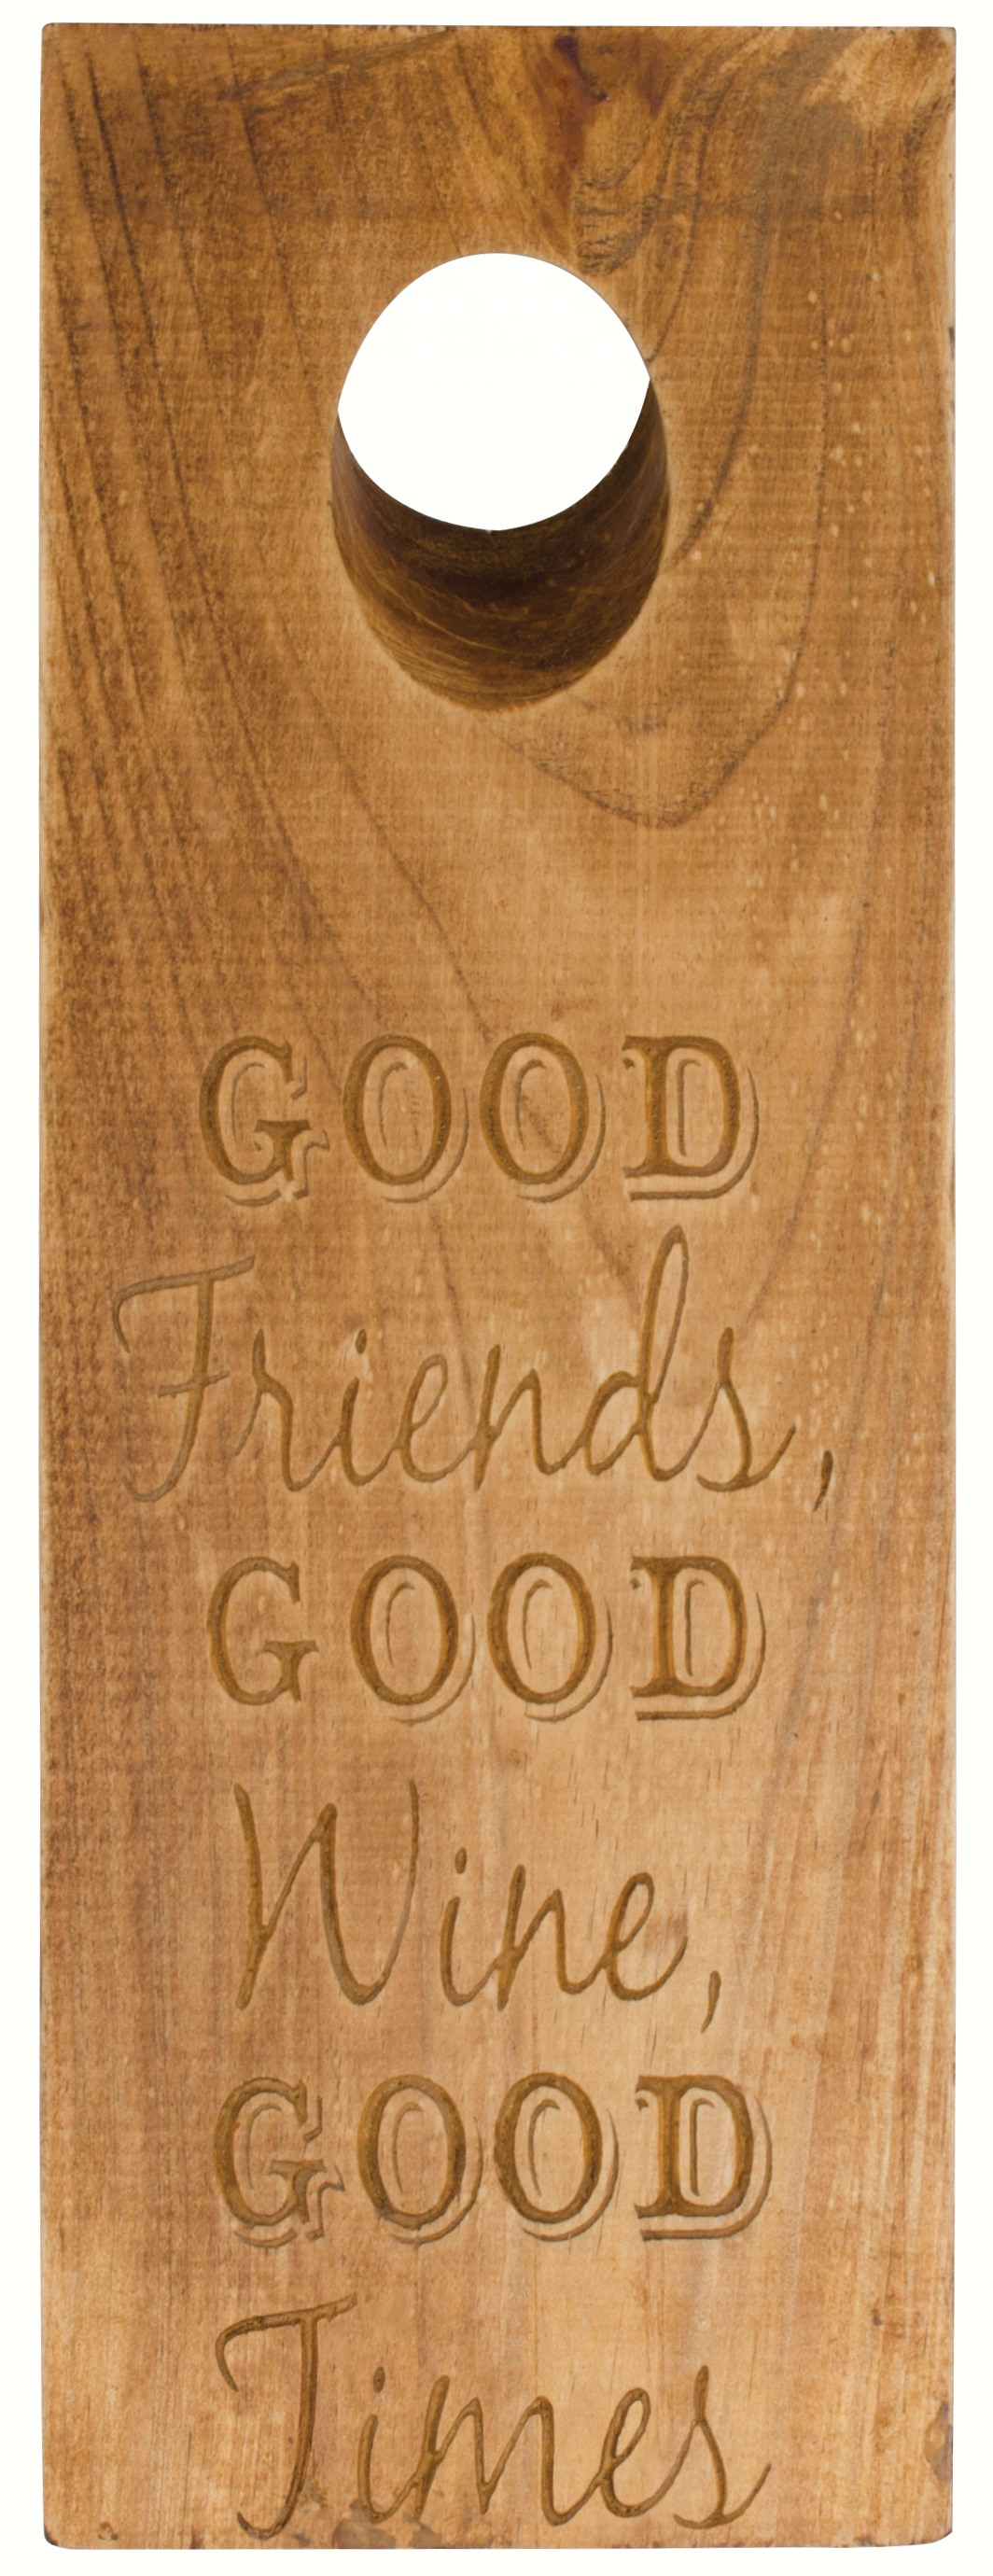 Good Friends, Good Wine, Good Times Gravity Wine Bottle Holder